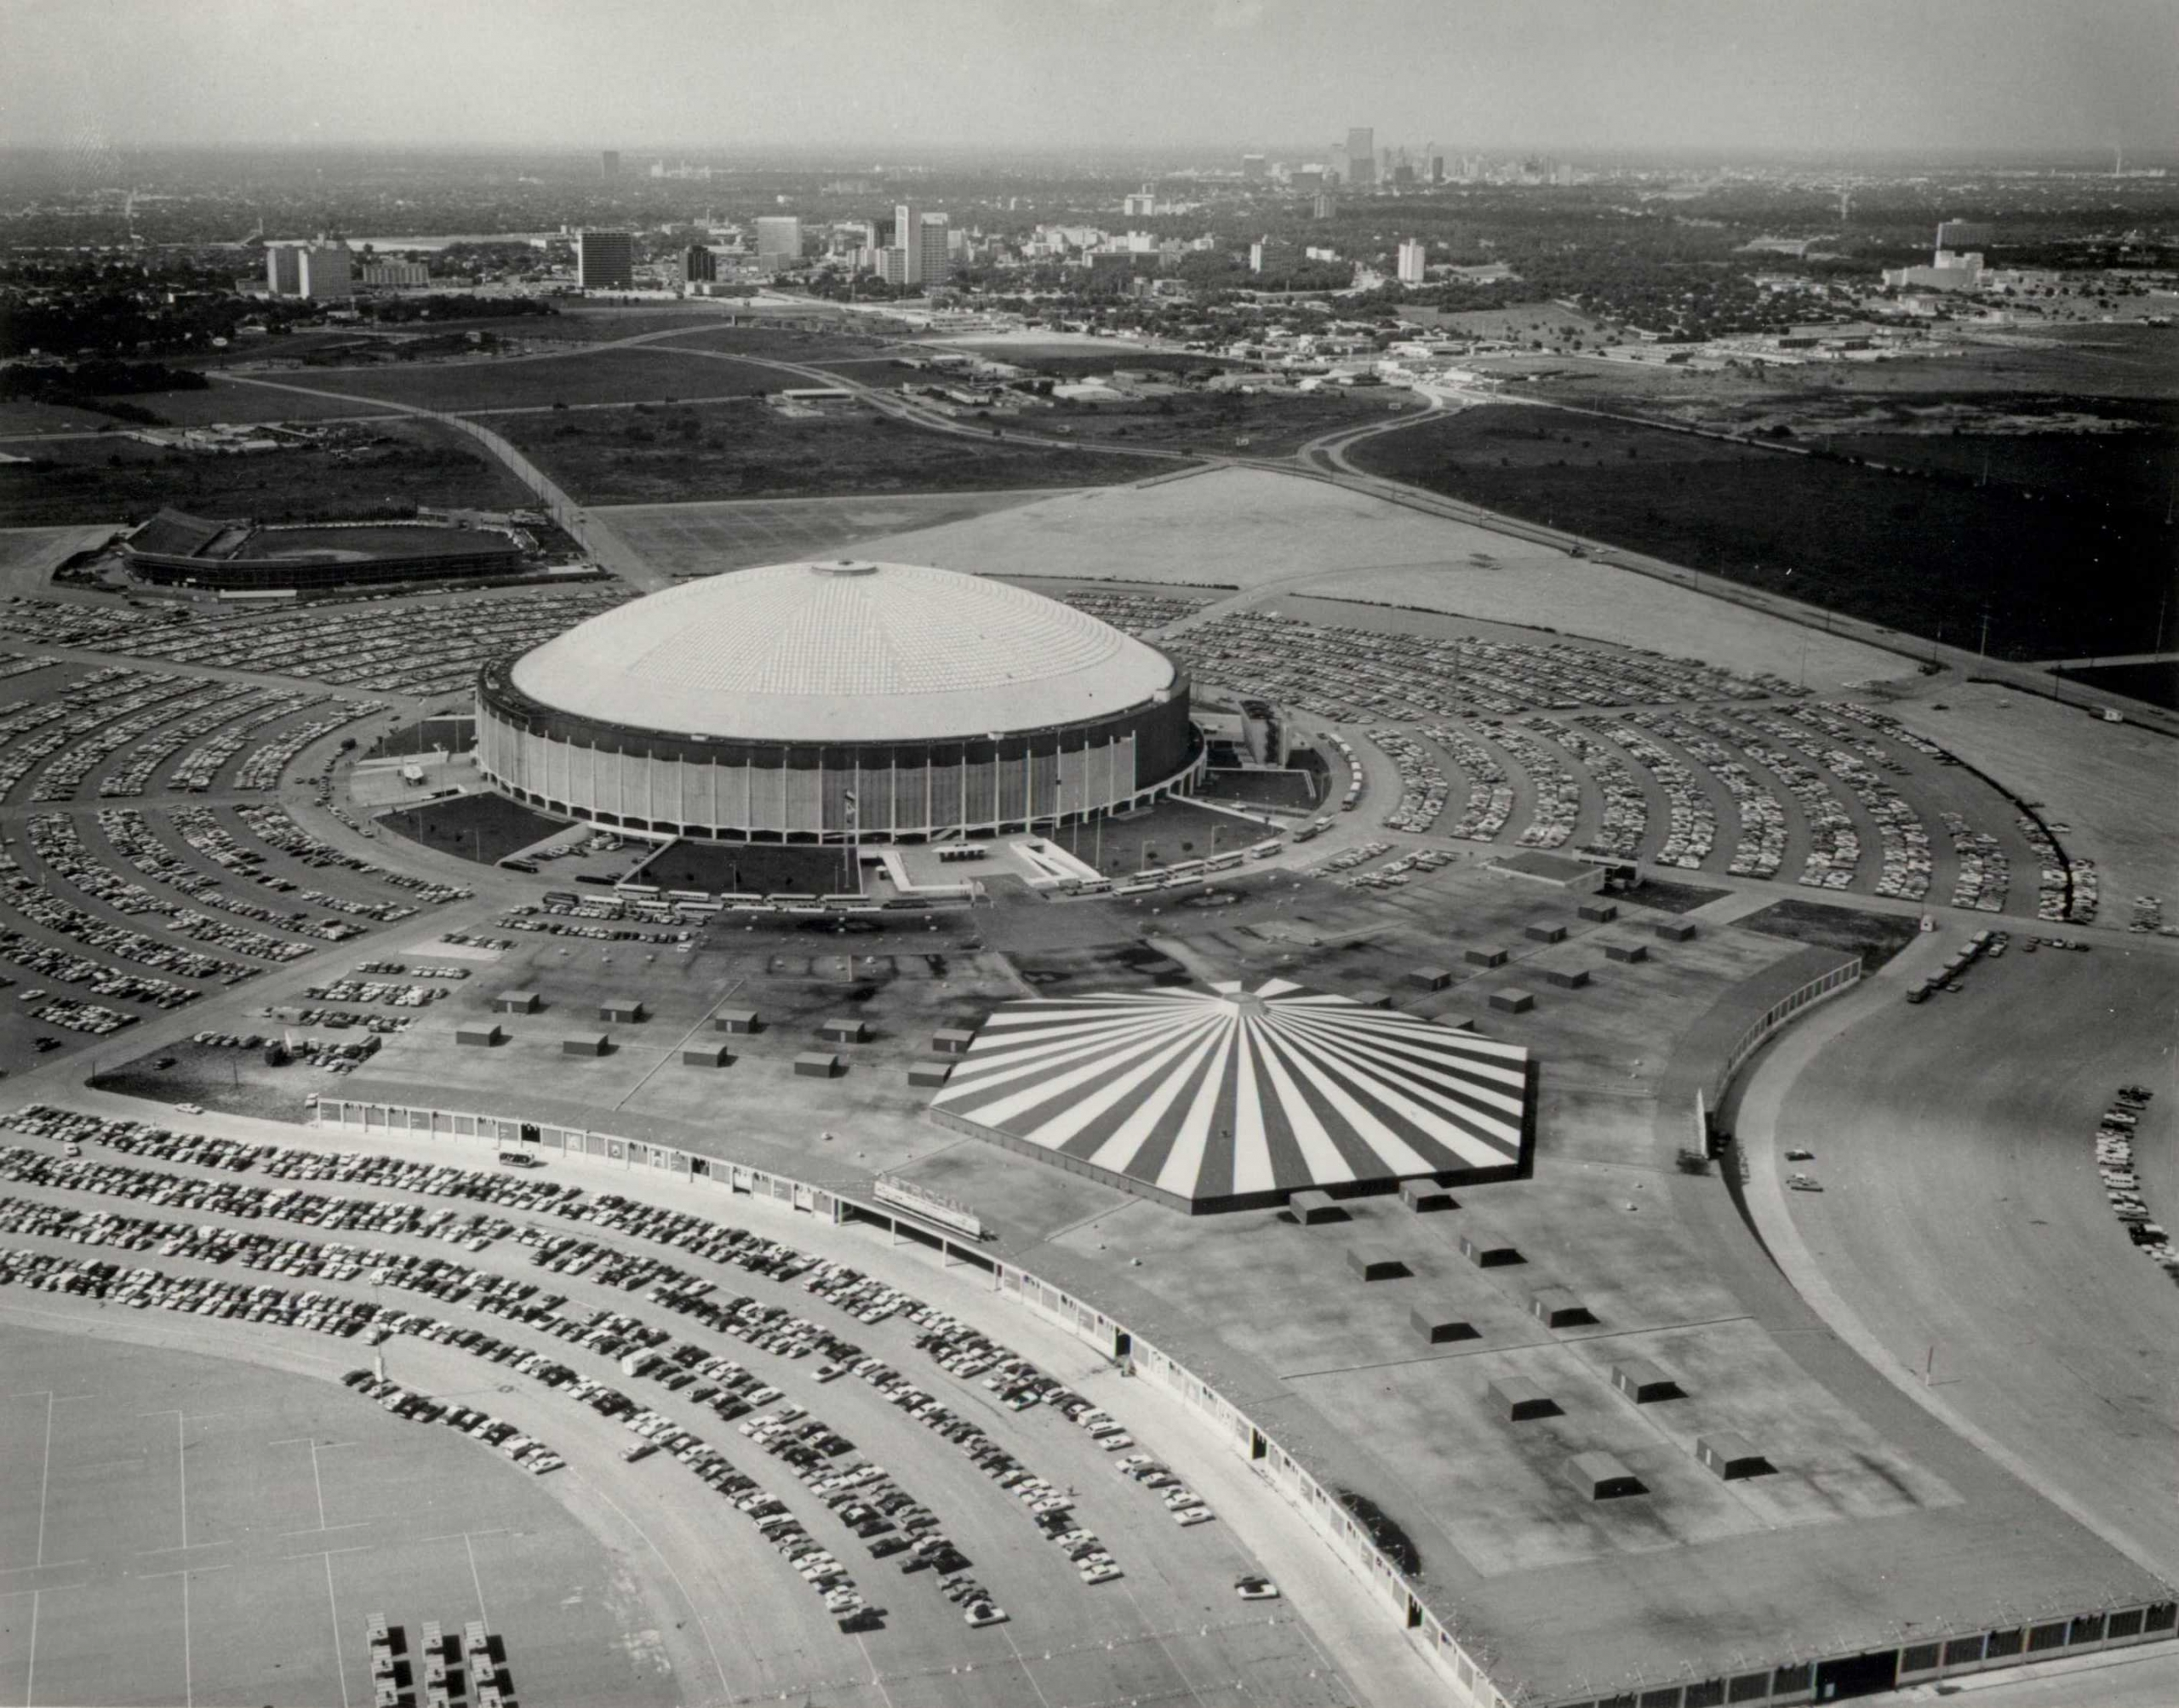 Near the Astrodome (with Colt Stadium in the background), a visitor from out of town could stay at the Astroworld Hotel, Astrodome Motor Inn, or Holiday Inn–Astroworld. For the kids there was the Astroworld amusement park, too.